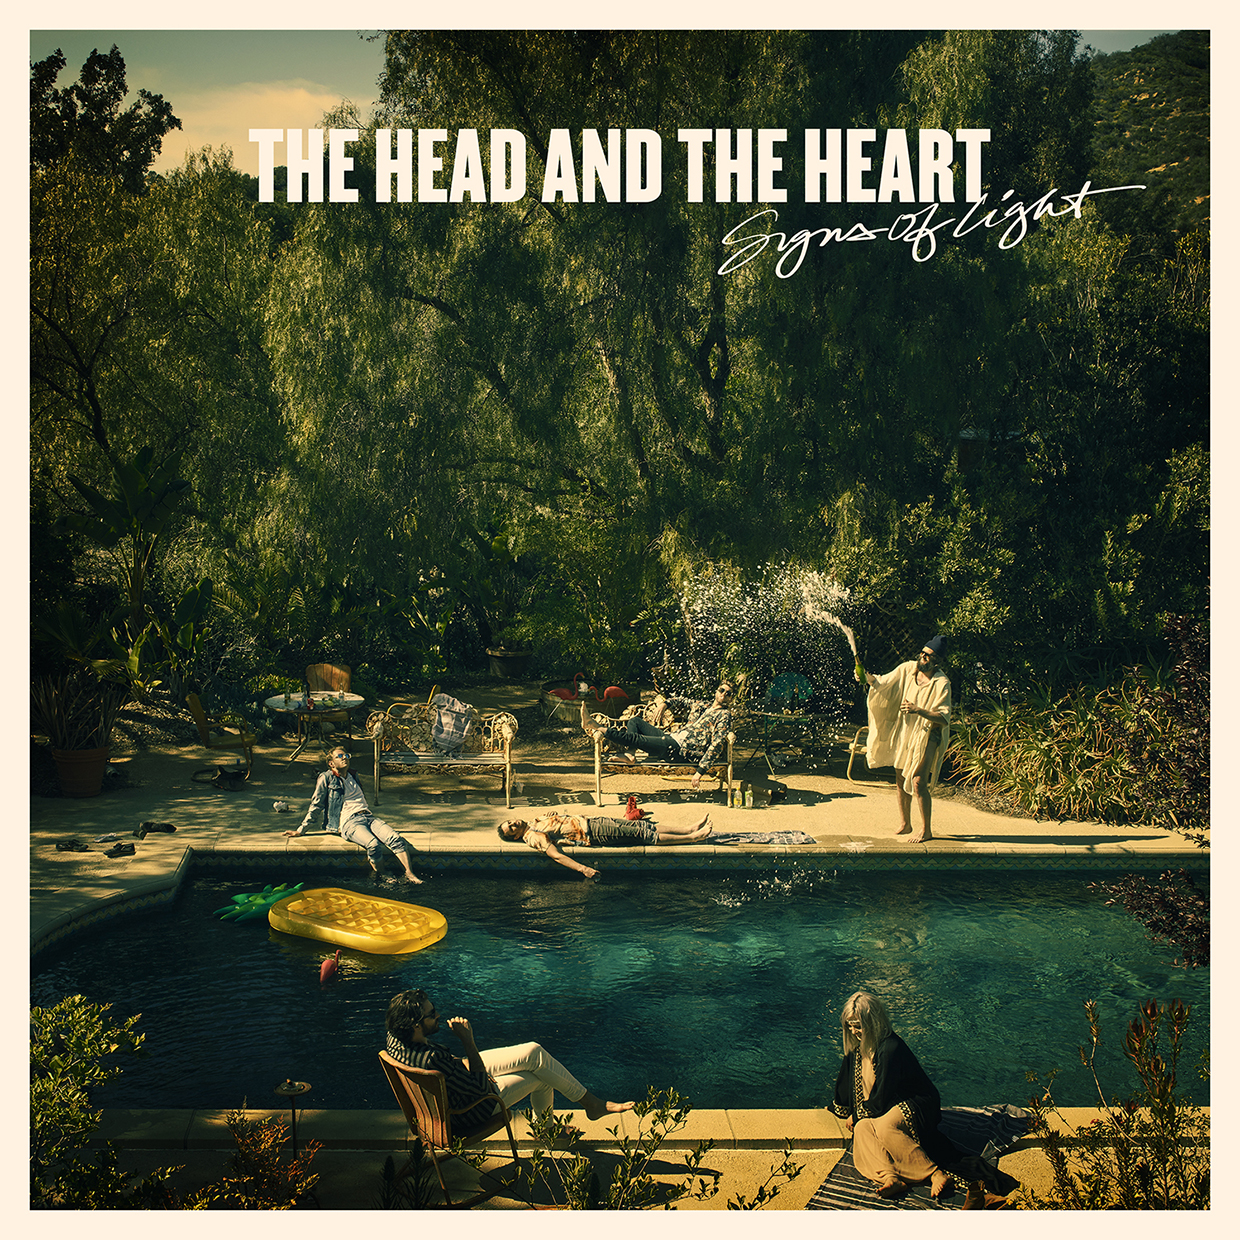 the-head-and-the-heart-signs-of-light-cover-2016-billboard-1240.jpg